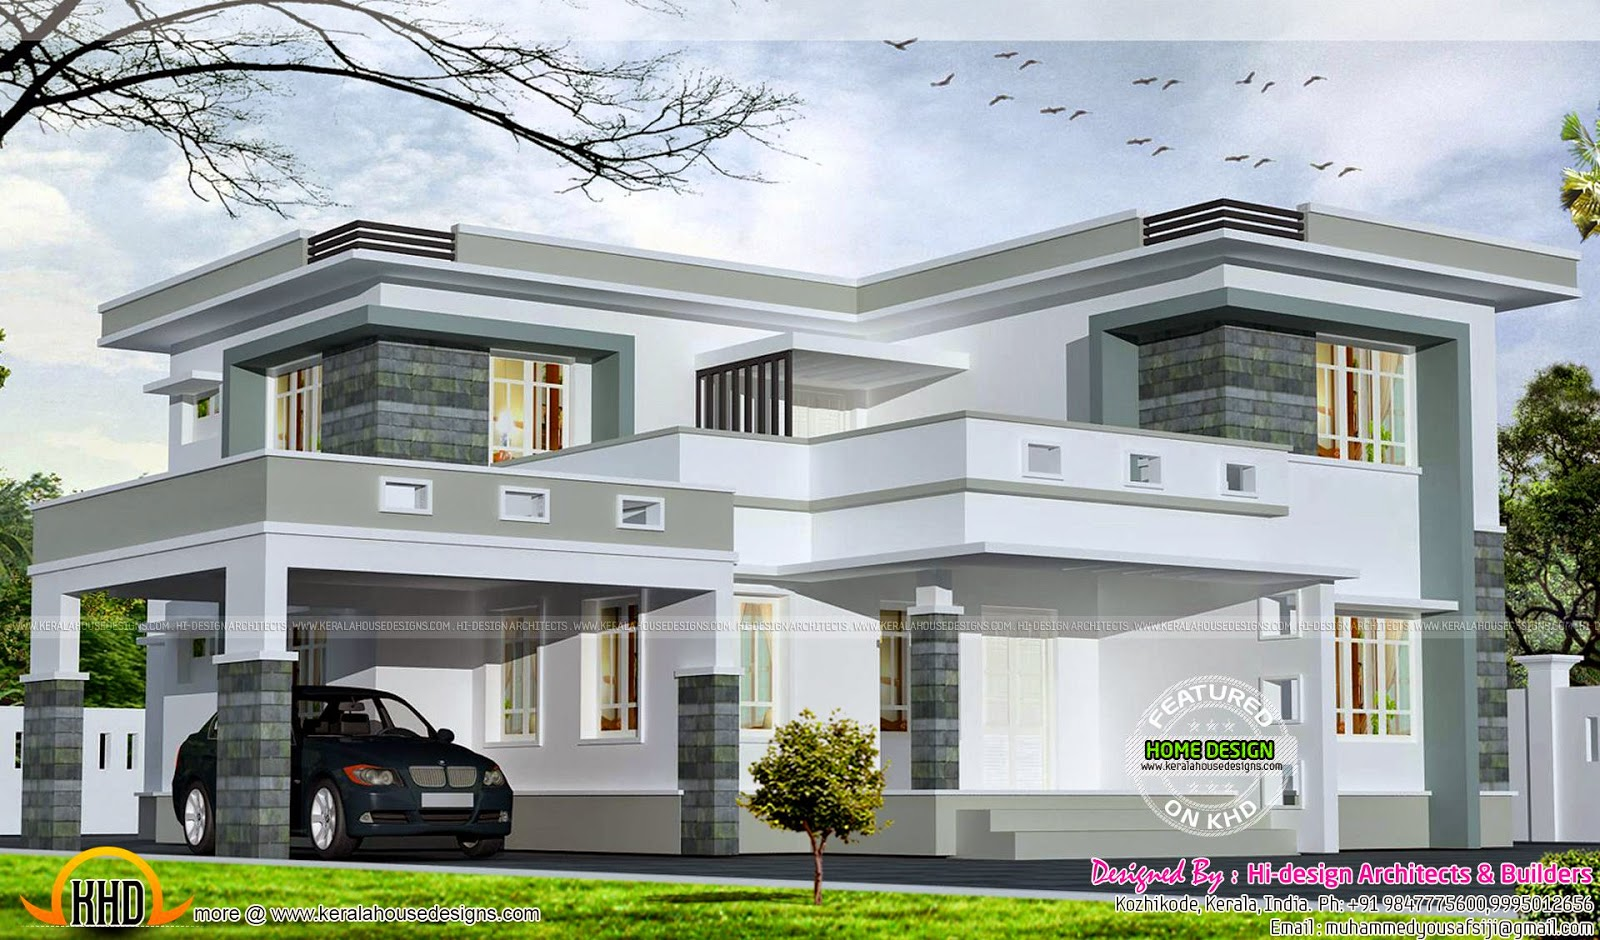 Simple But Beautiful Flat Roof House (Kerala Home Design) | Flat Roof  House, Flat Roof And Kerala